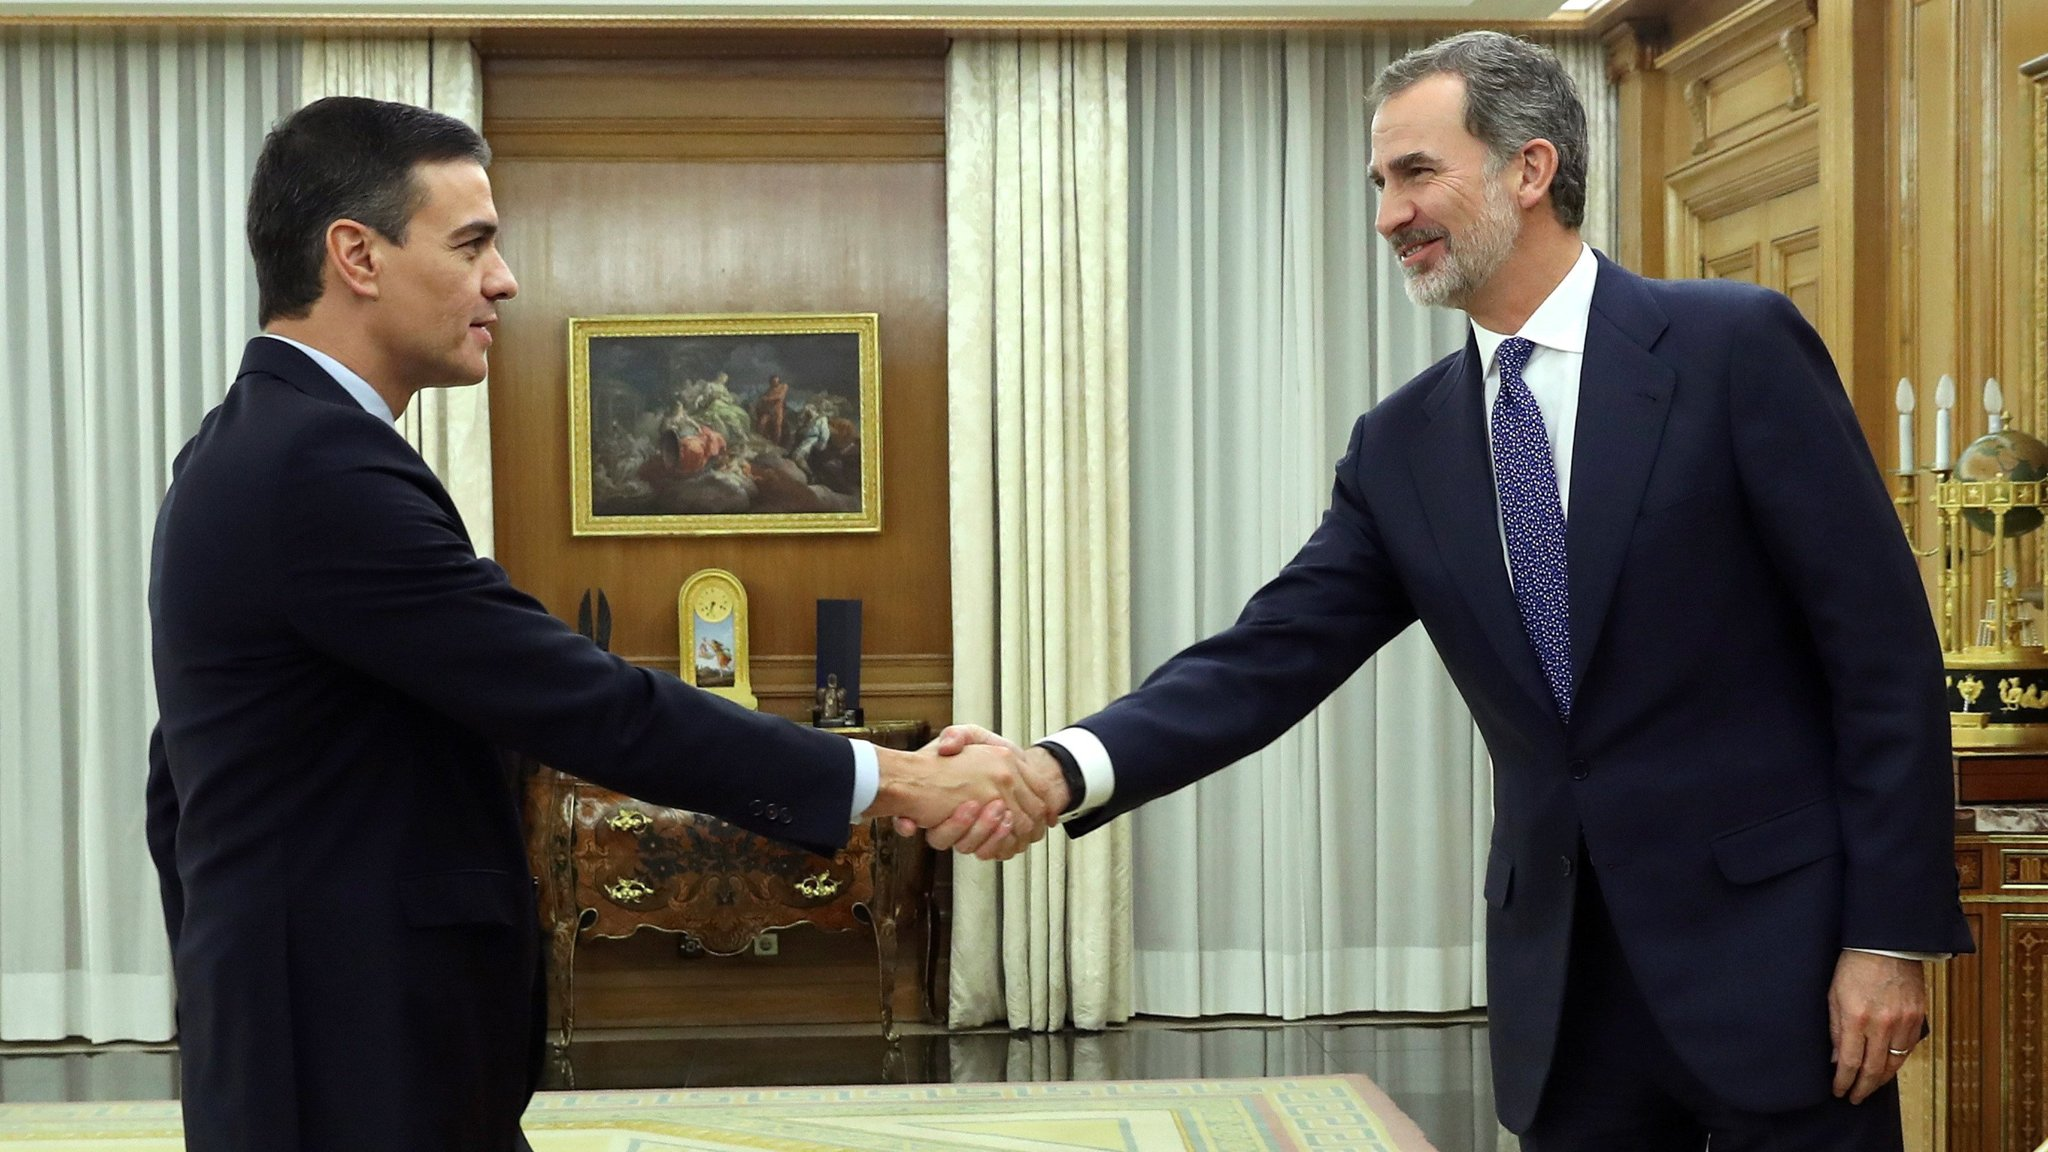 Pedro Sánchez receives royal approval to lead Spanish government